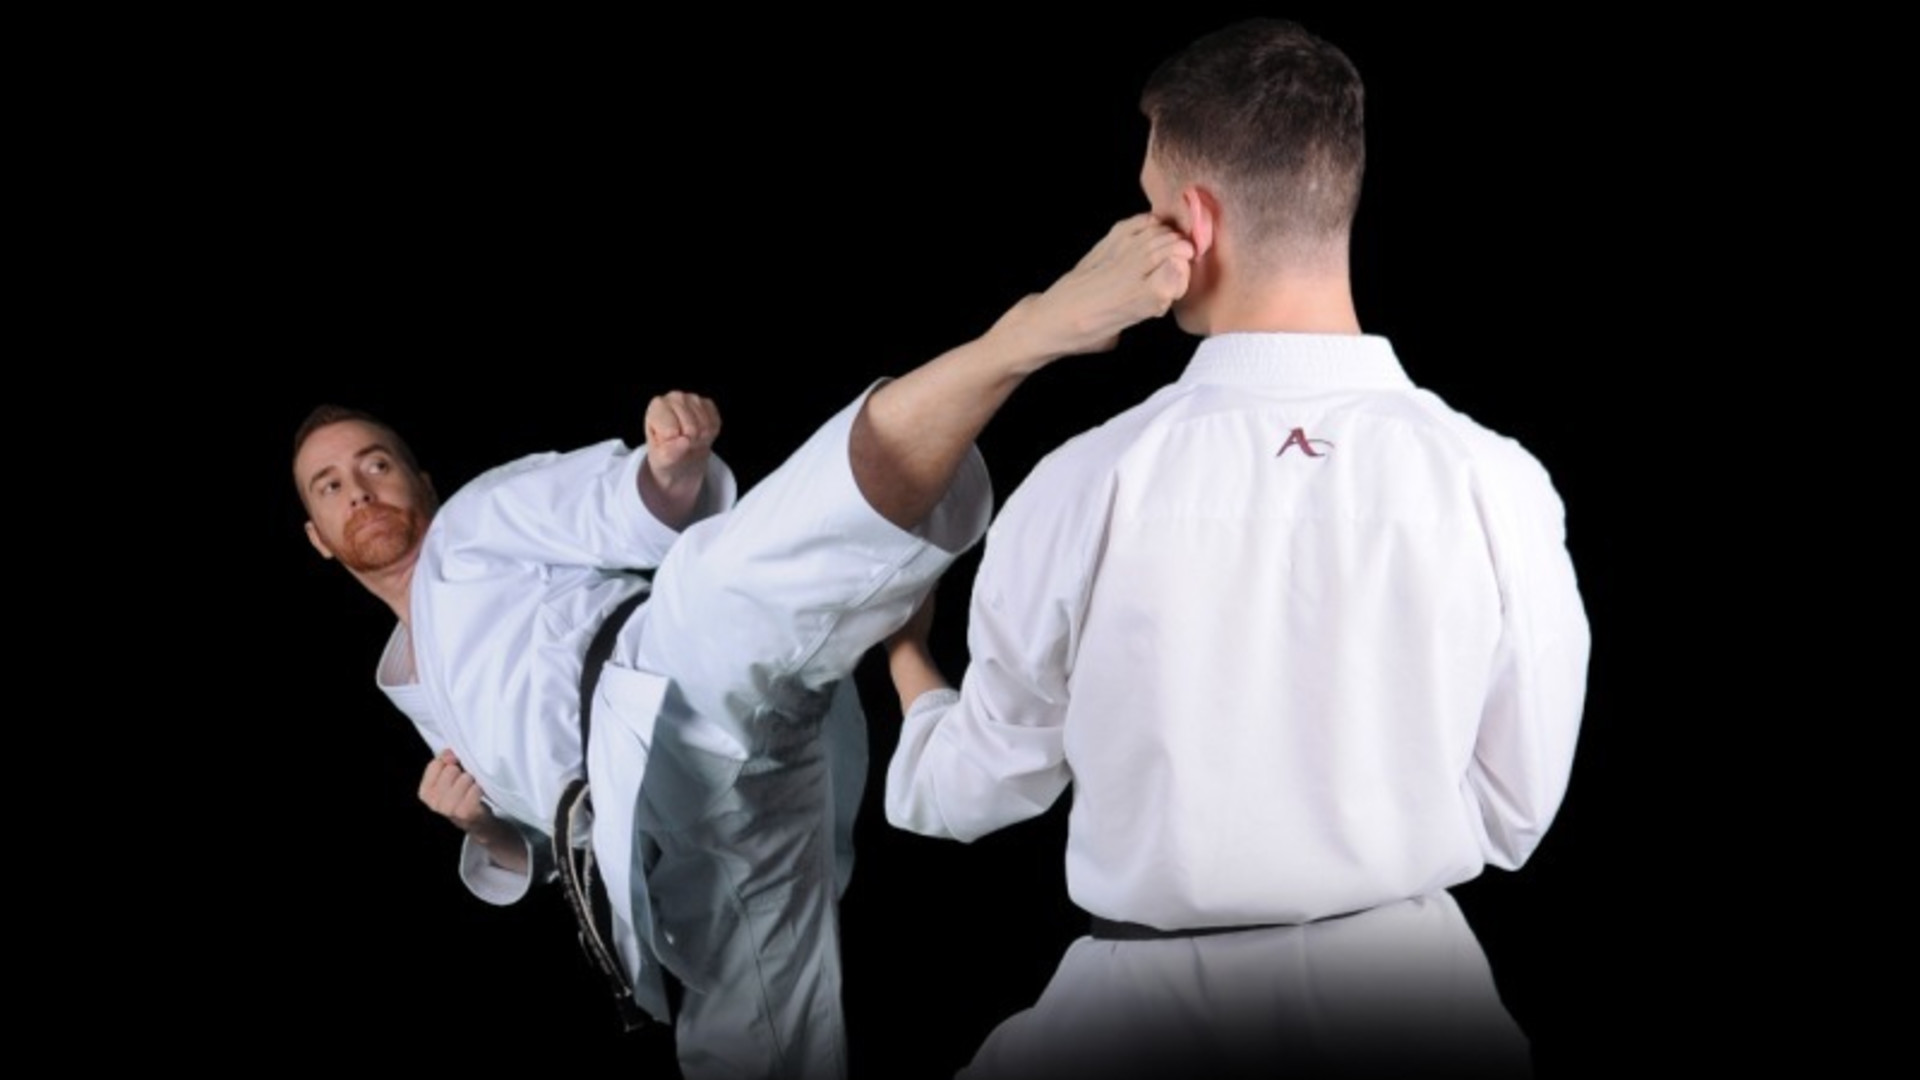 <style>  v {    text-shadow: 2px 2px 8px #1e2a55;  color: #fff } </style>  <strong><v>Traditional Karate Training in Scotland</v></strong>